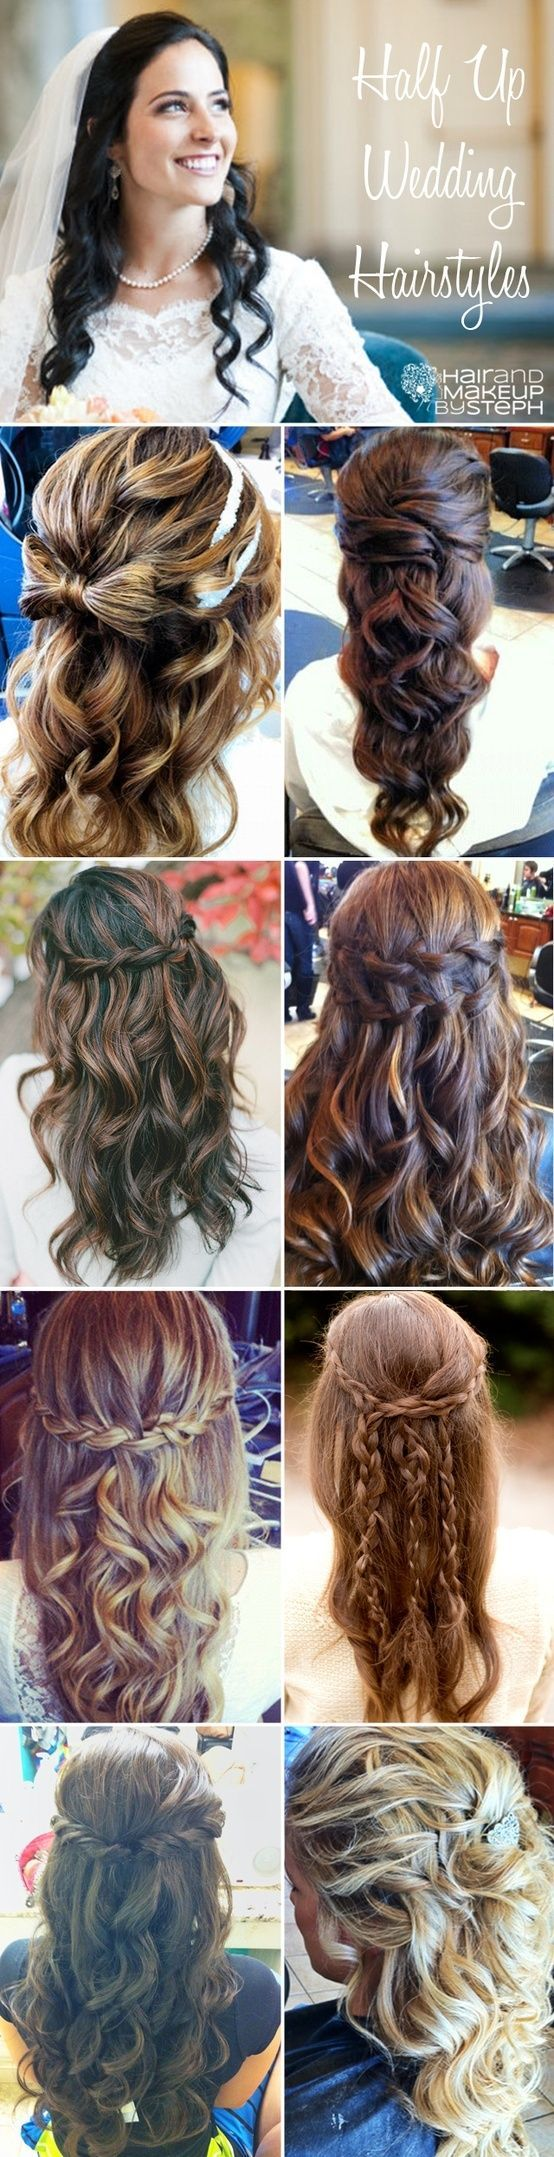 I definitely want a lot of hair down and curled these are cute